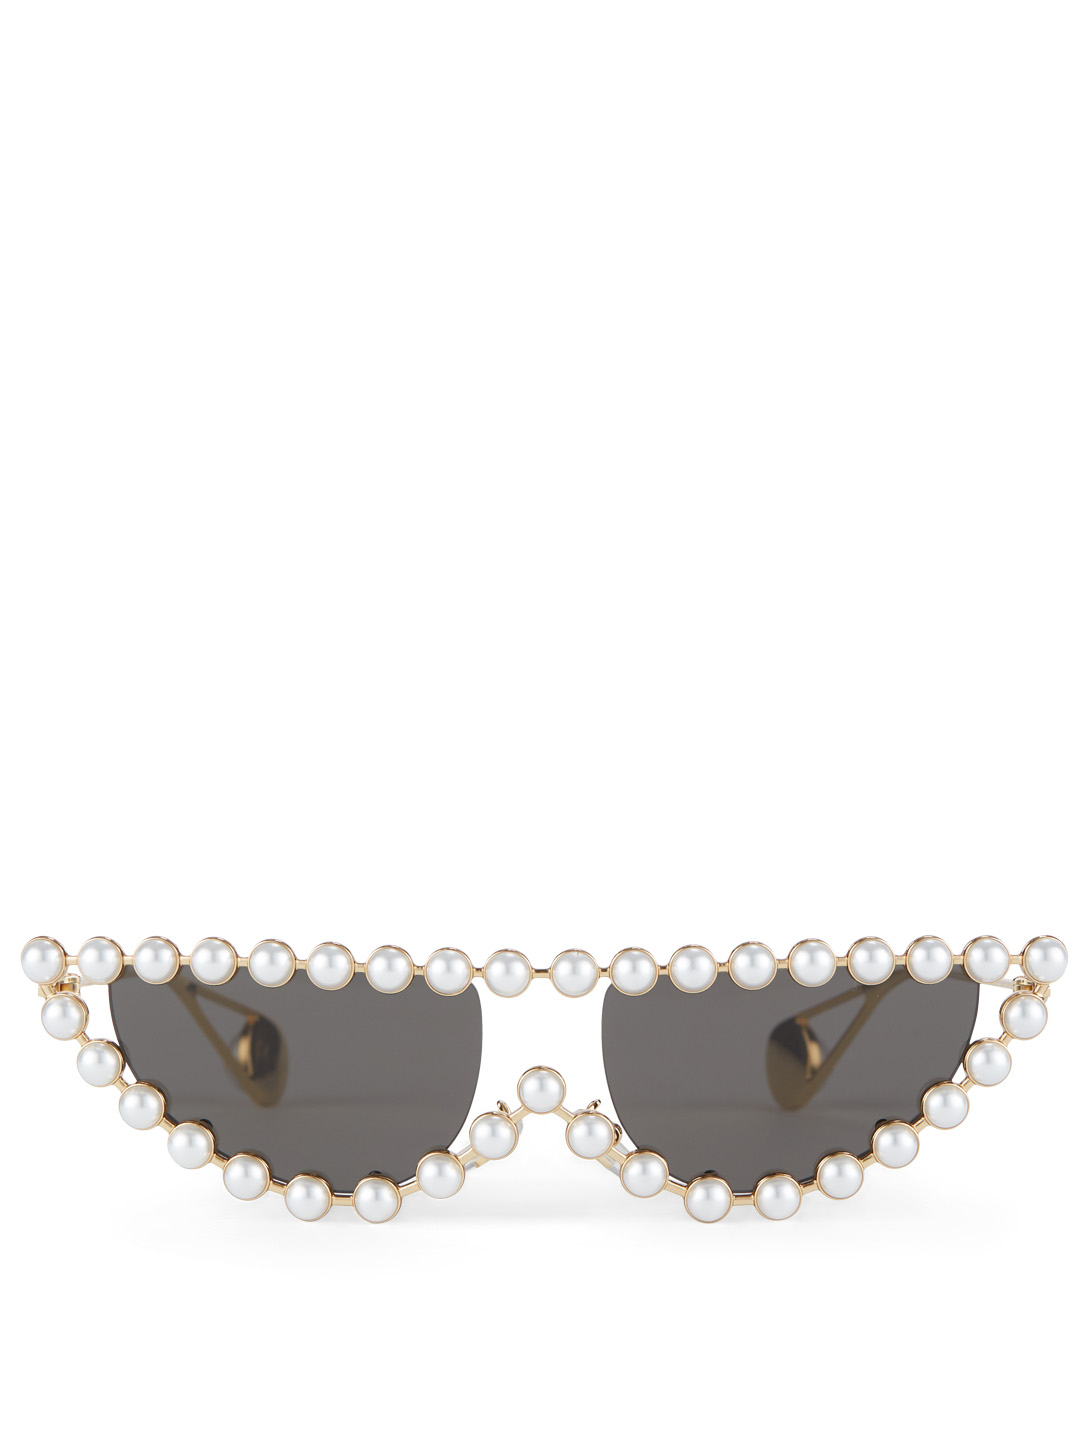 478de23516 GUCCI Cat Eye Sunglasses With Pearls